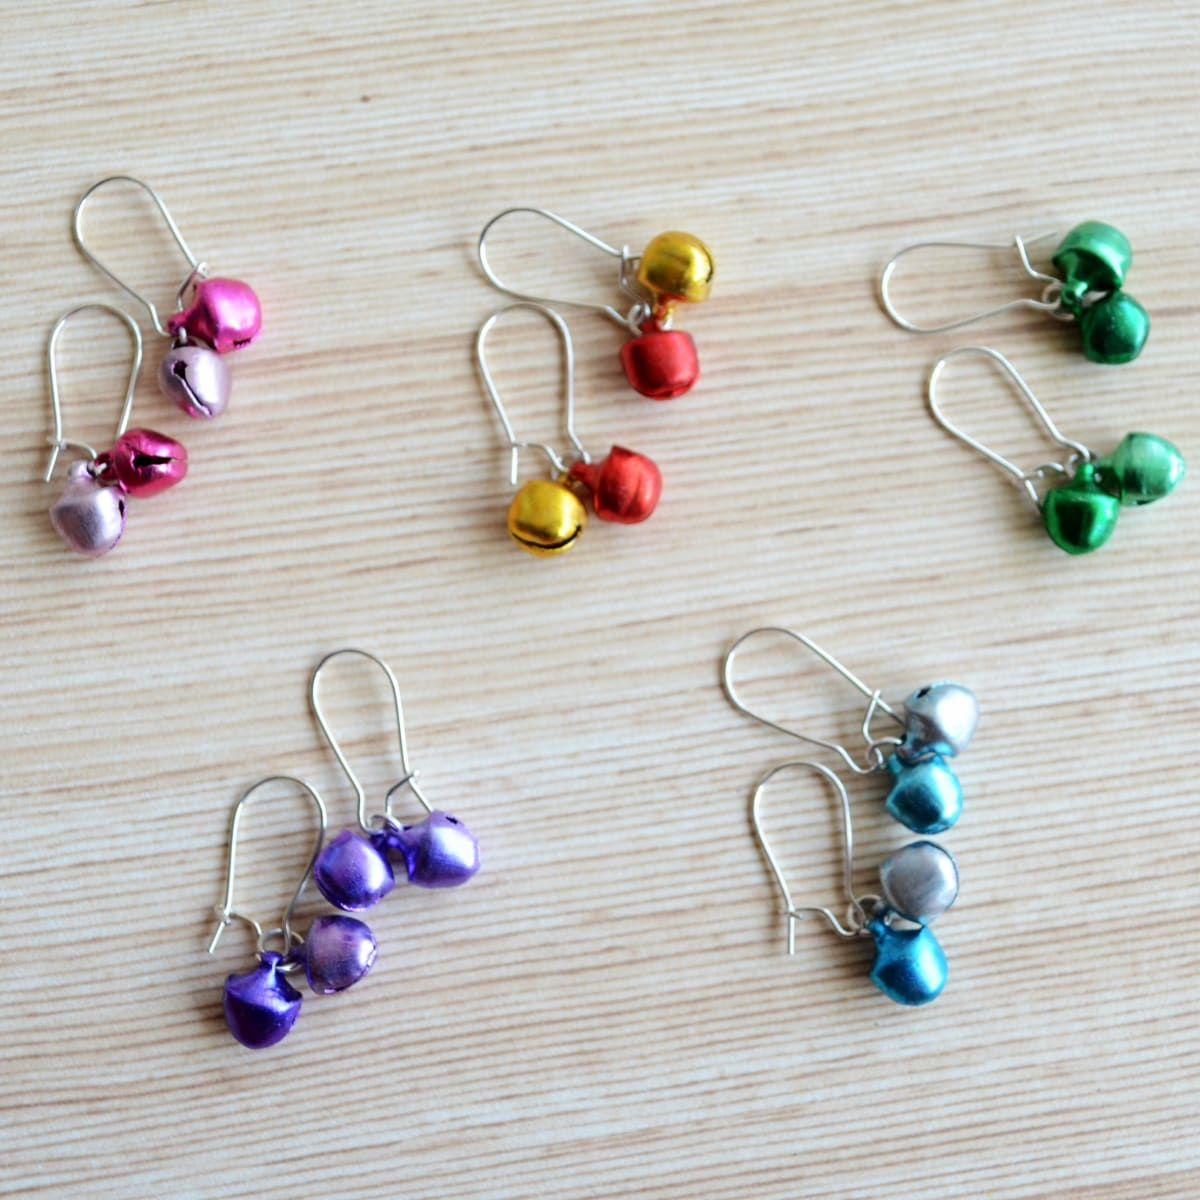 earrings Rainbow Matte Ghungroo Hoop Earrings Gift Set Multicolour and Silver Drop - by Pretty Ponytails